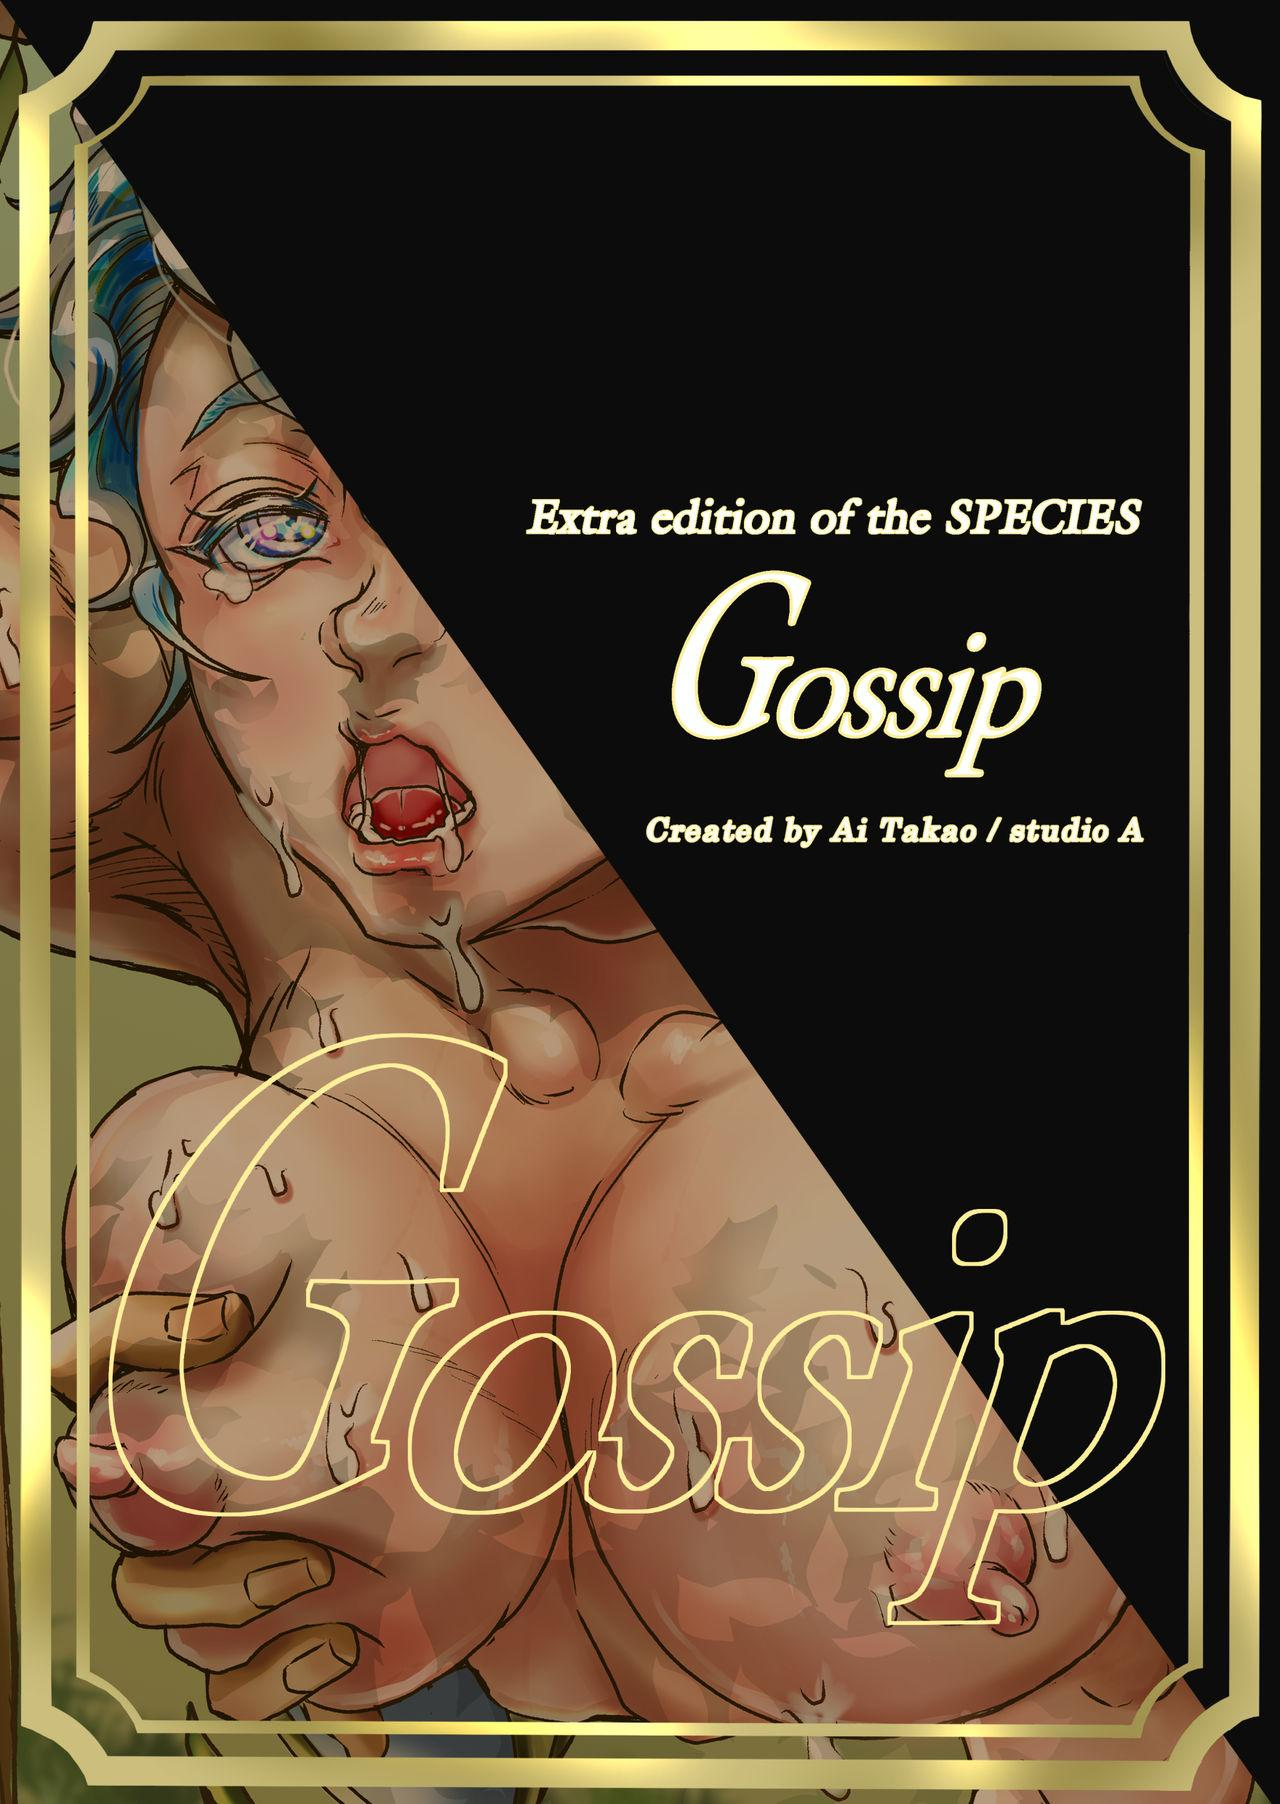 Gossip 1 ~Extra edition of the SPECIES 42